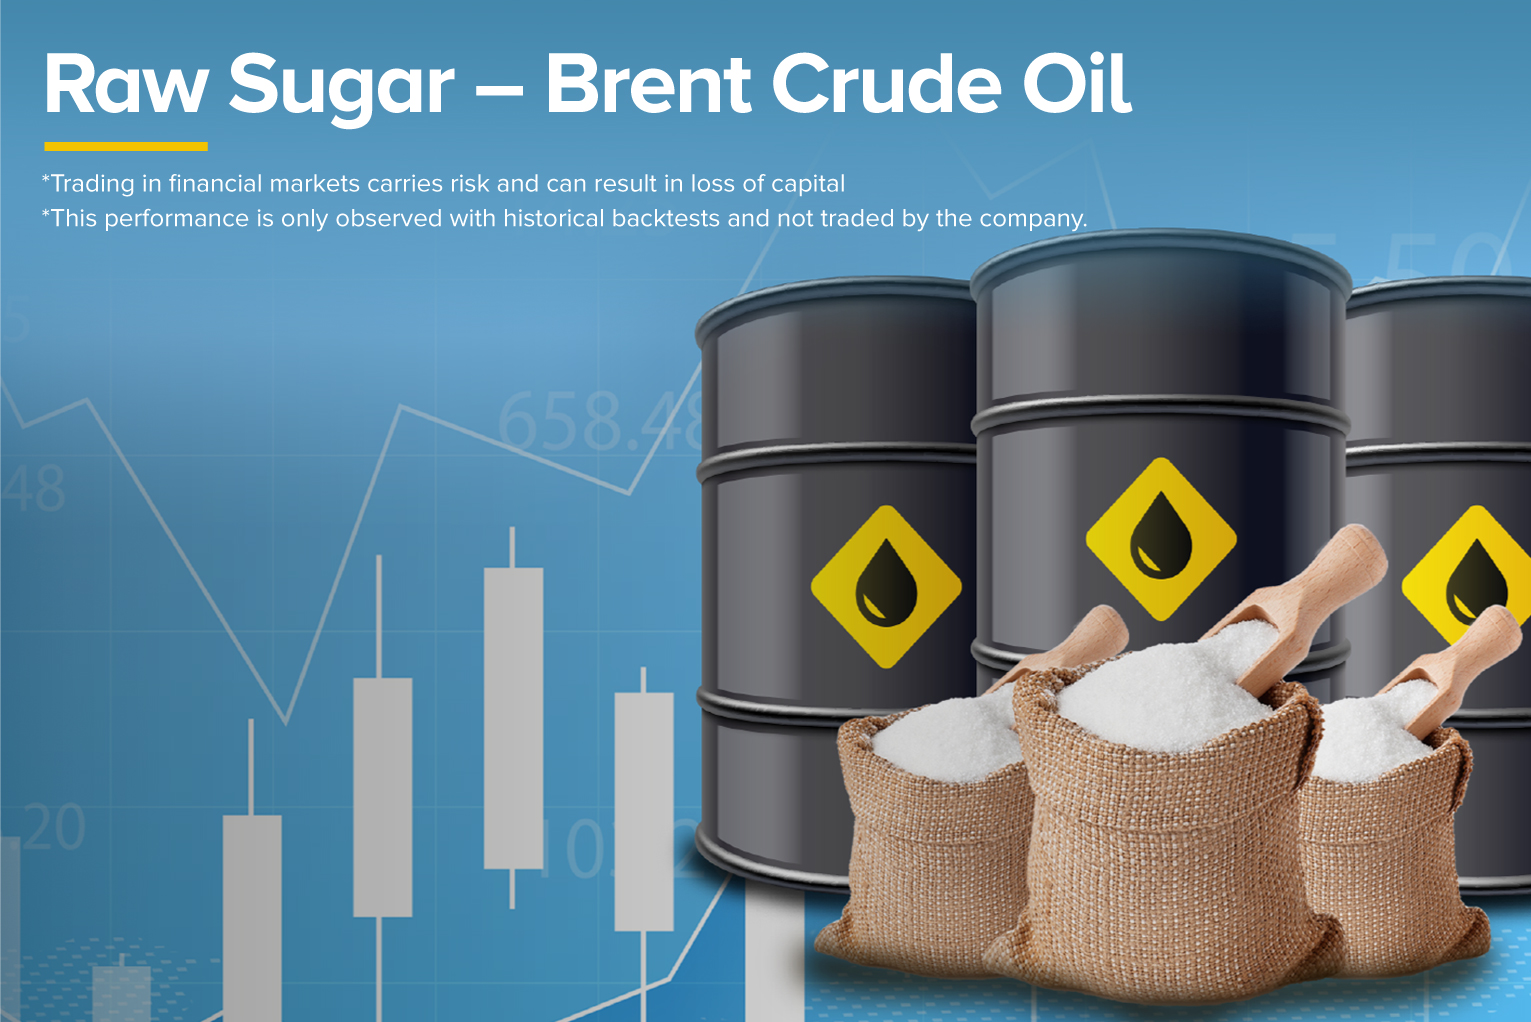 Raw Sugar - Brent Crude Oil - Investment Insights